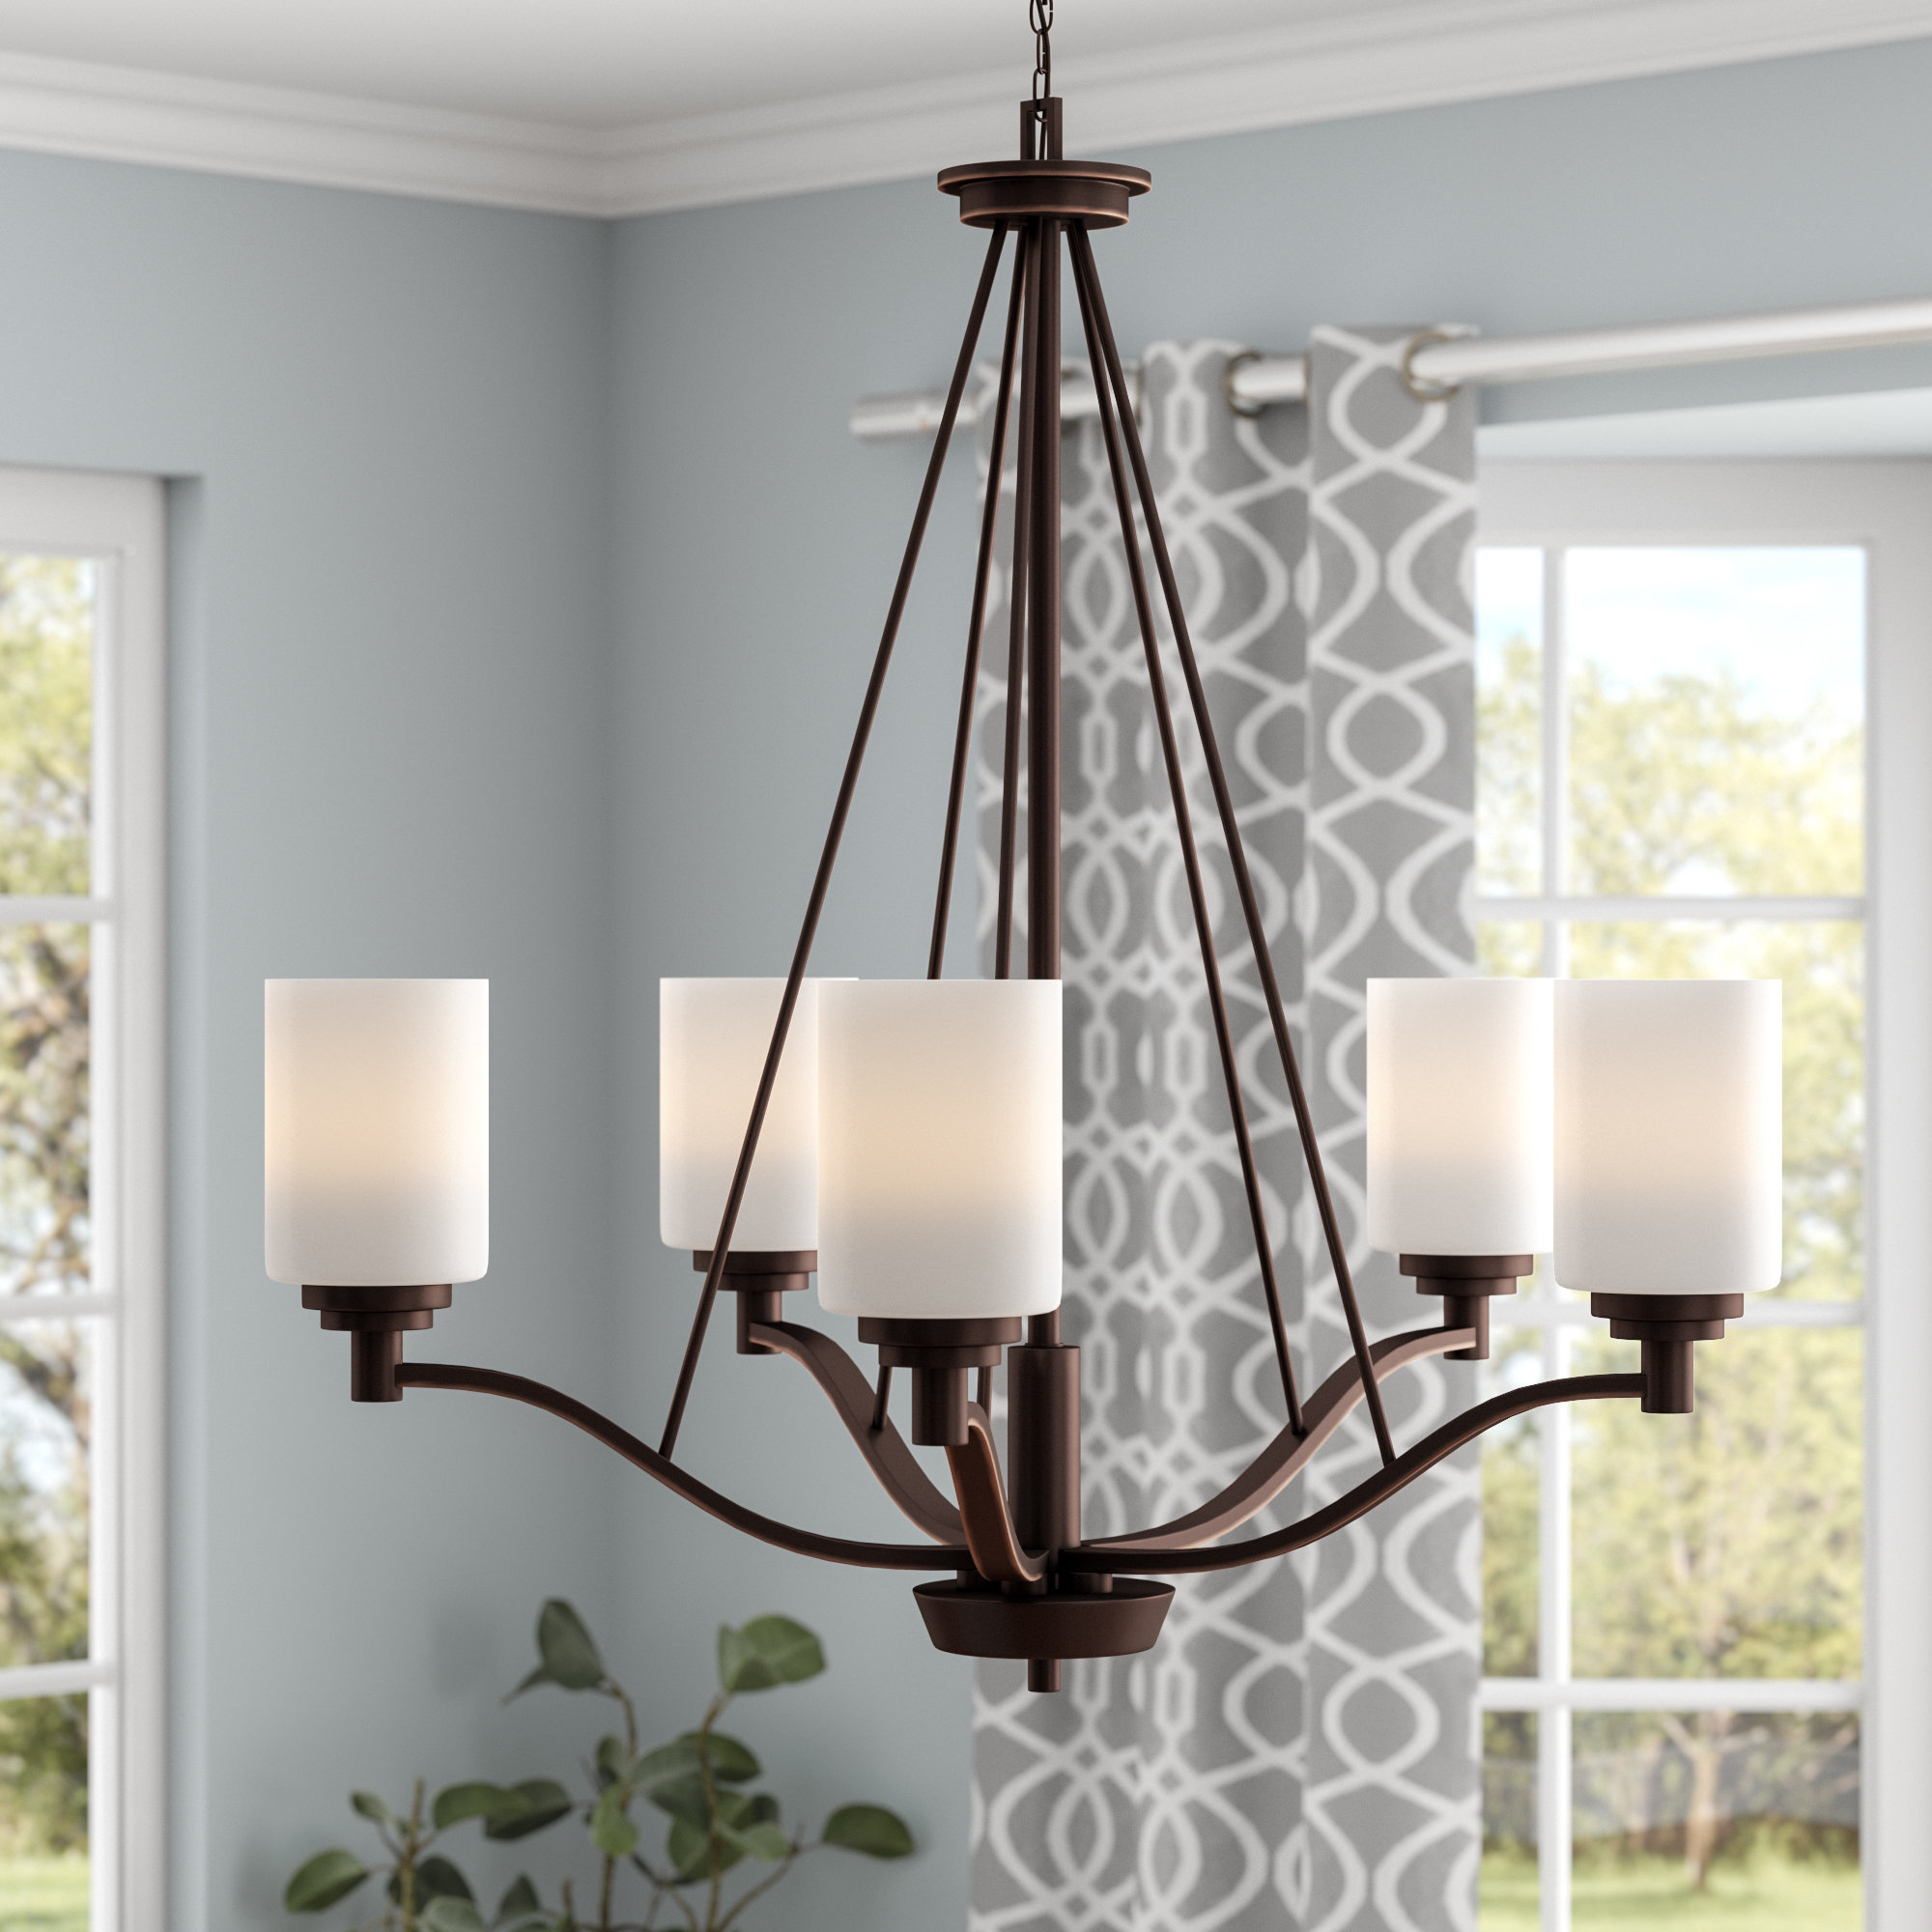 Hester 5 Light Shaded Chandelier Throughout Suki 5 Light Shaded Chandeliers (View 11 of 30)